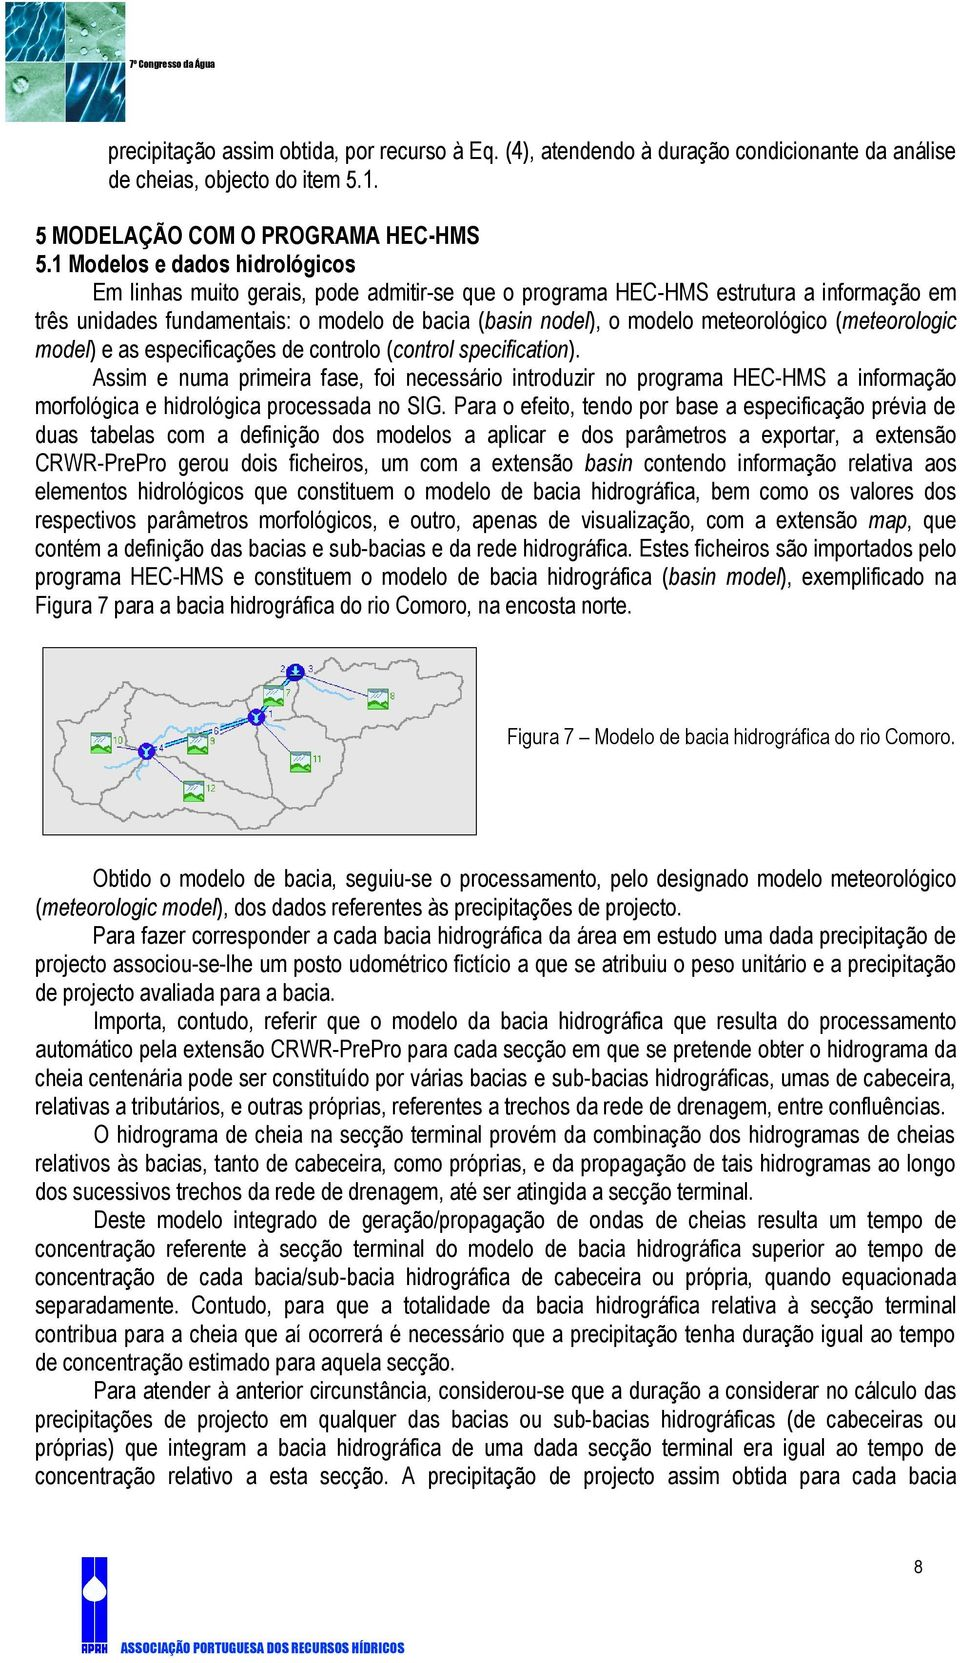 meteorológico (meteorologic model) e as especificações de controlo (control specification).